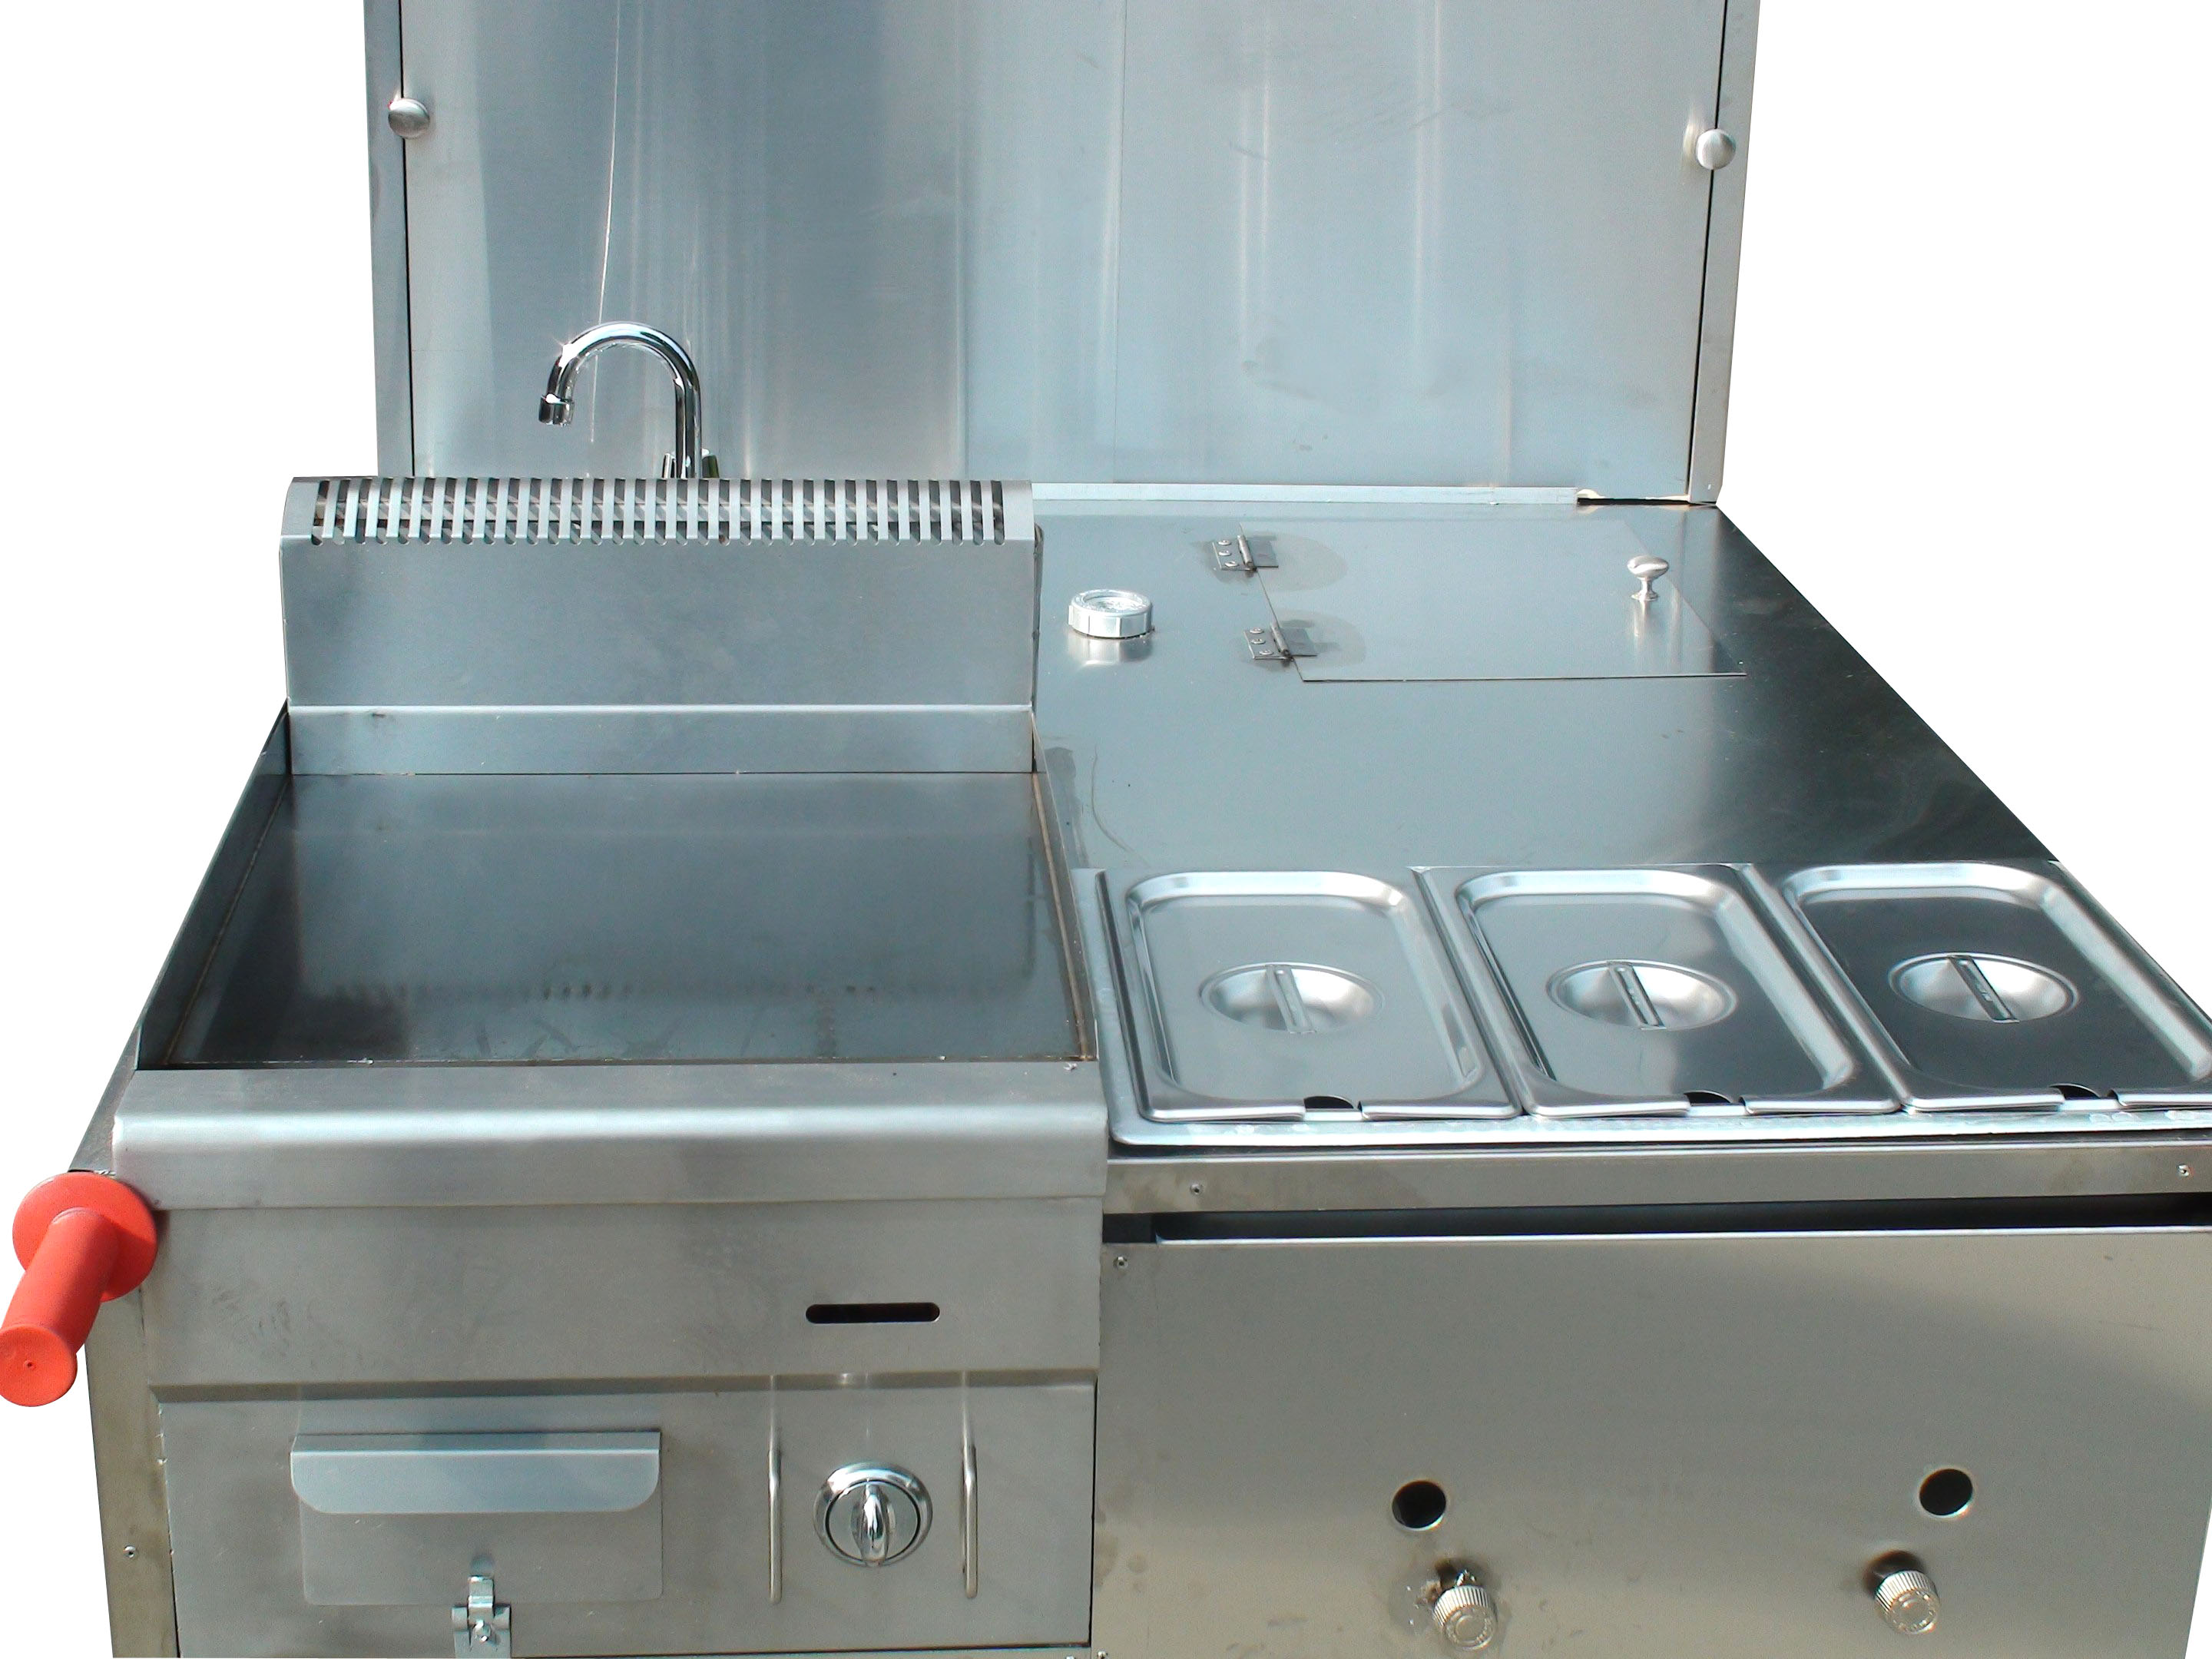 Hot Dog Carts For Sale - Pro Dog Hot Dog Stand For Sale by Bens Carts